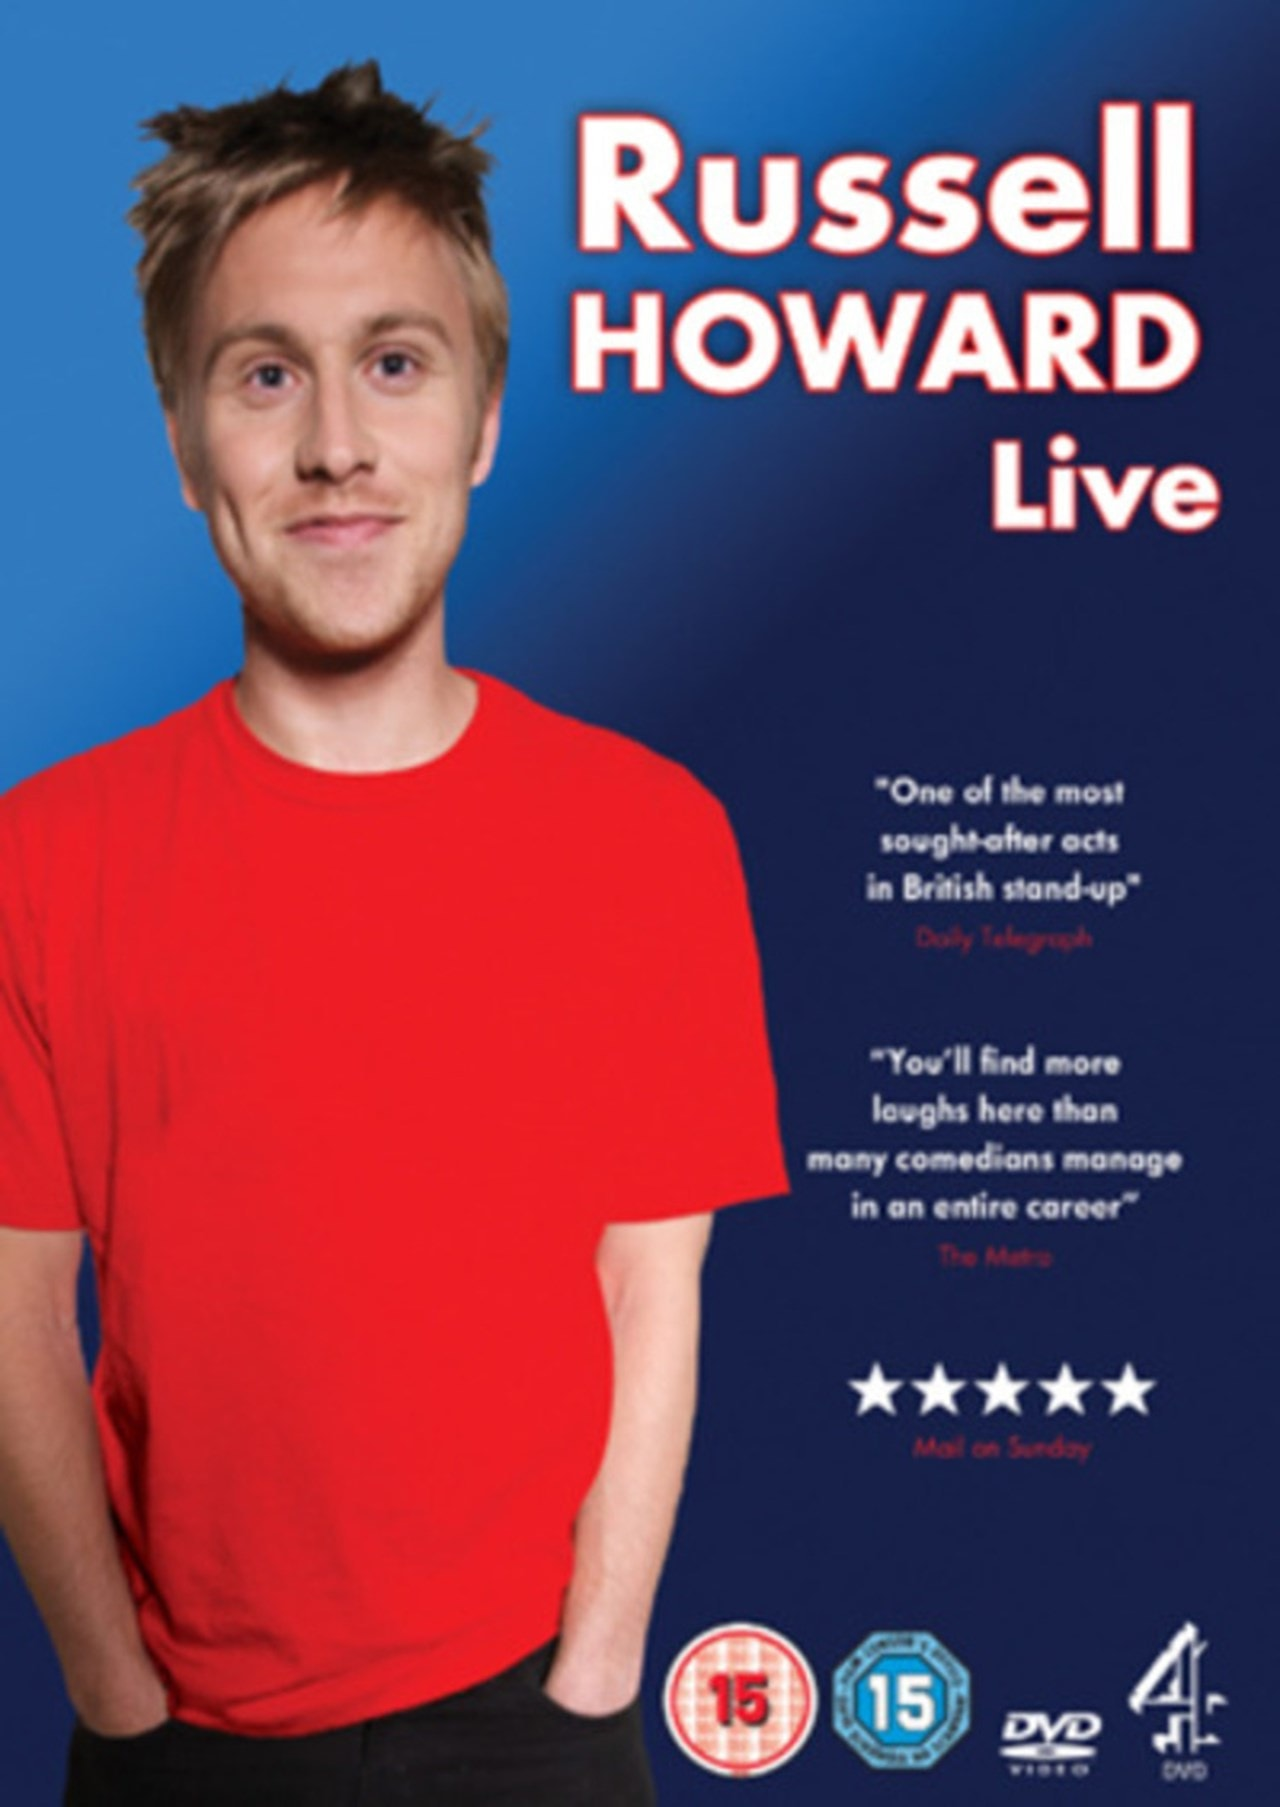 Russell Howard: Live - 1